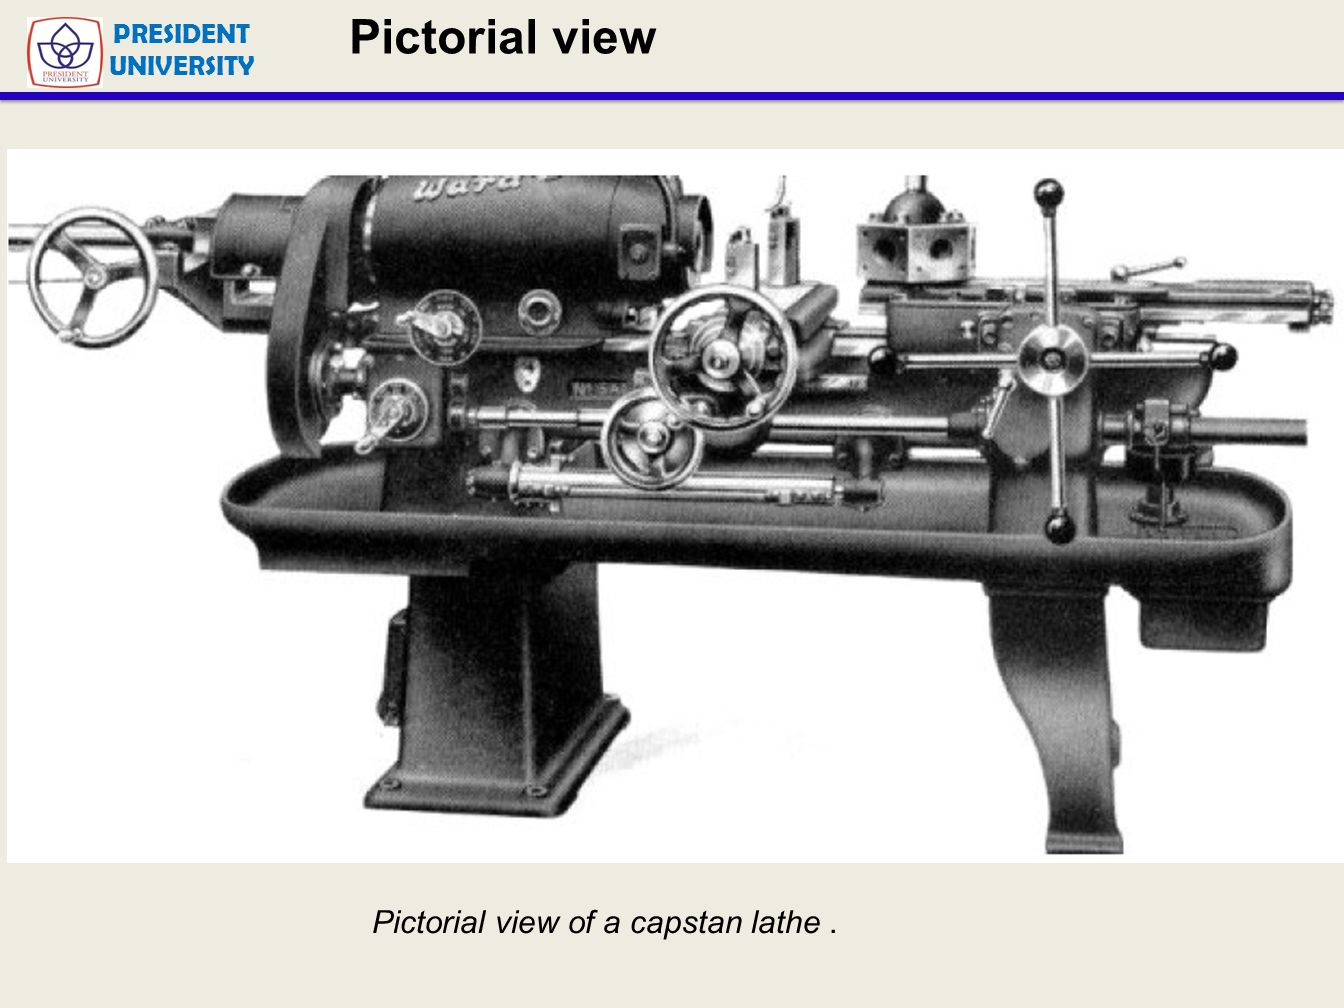 Pictorial view of turret Lathe